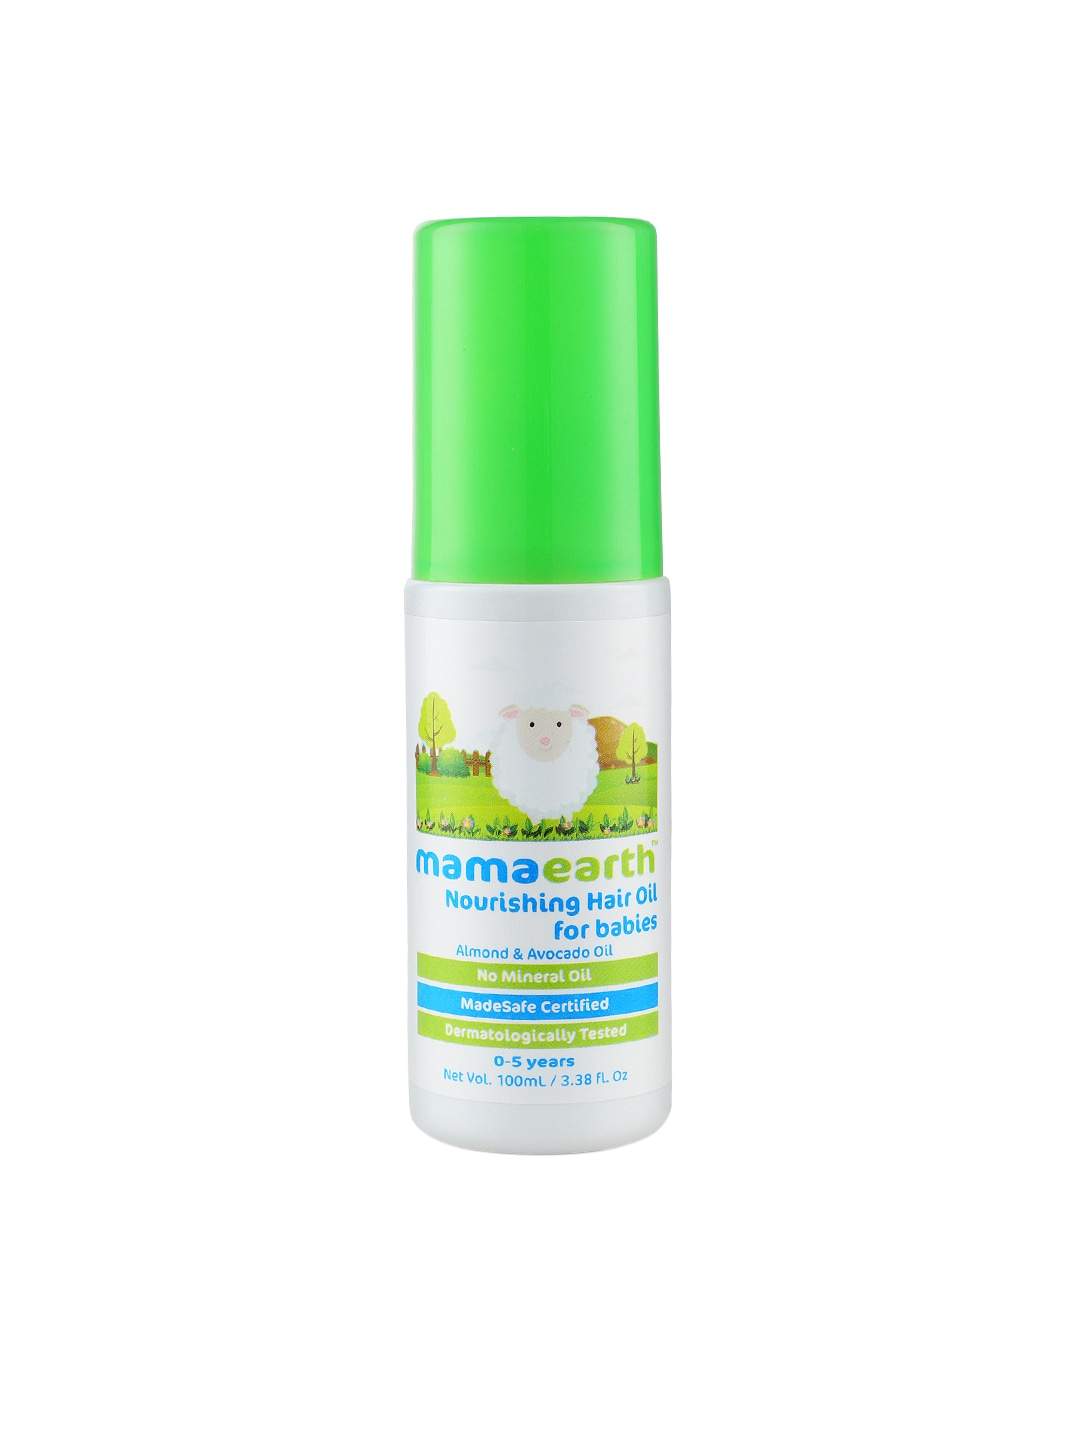 Mamaearth Nourishing Hair Oil For Babies image